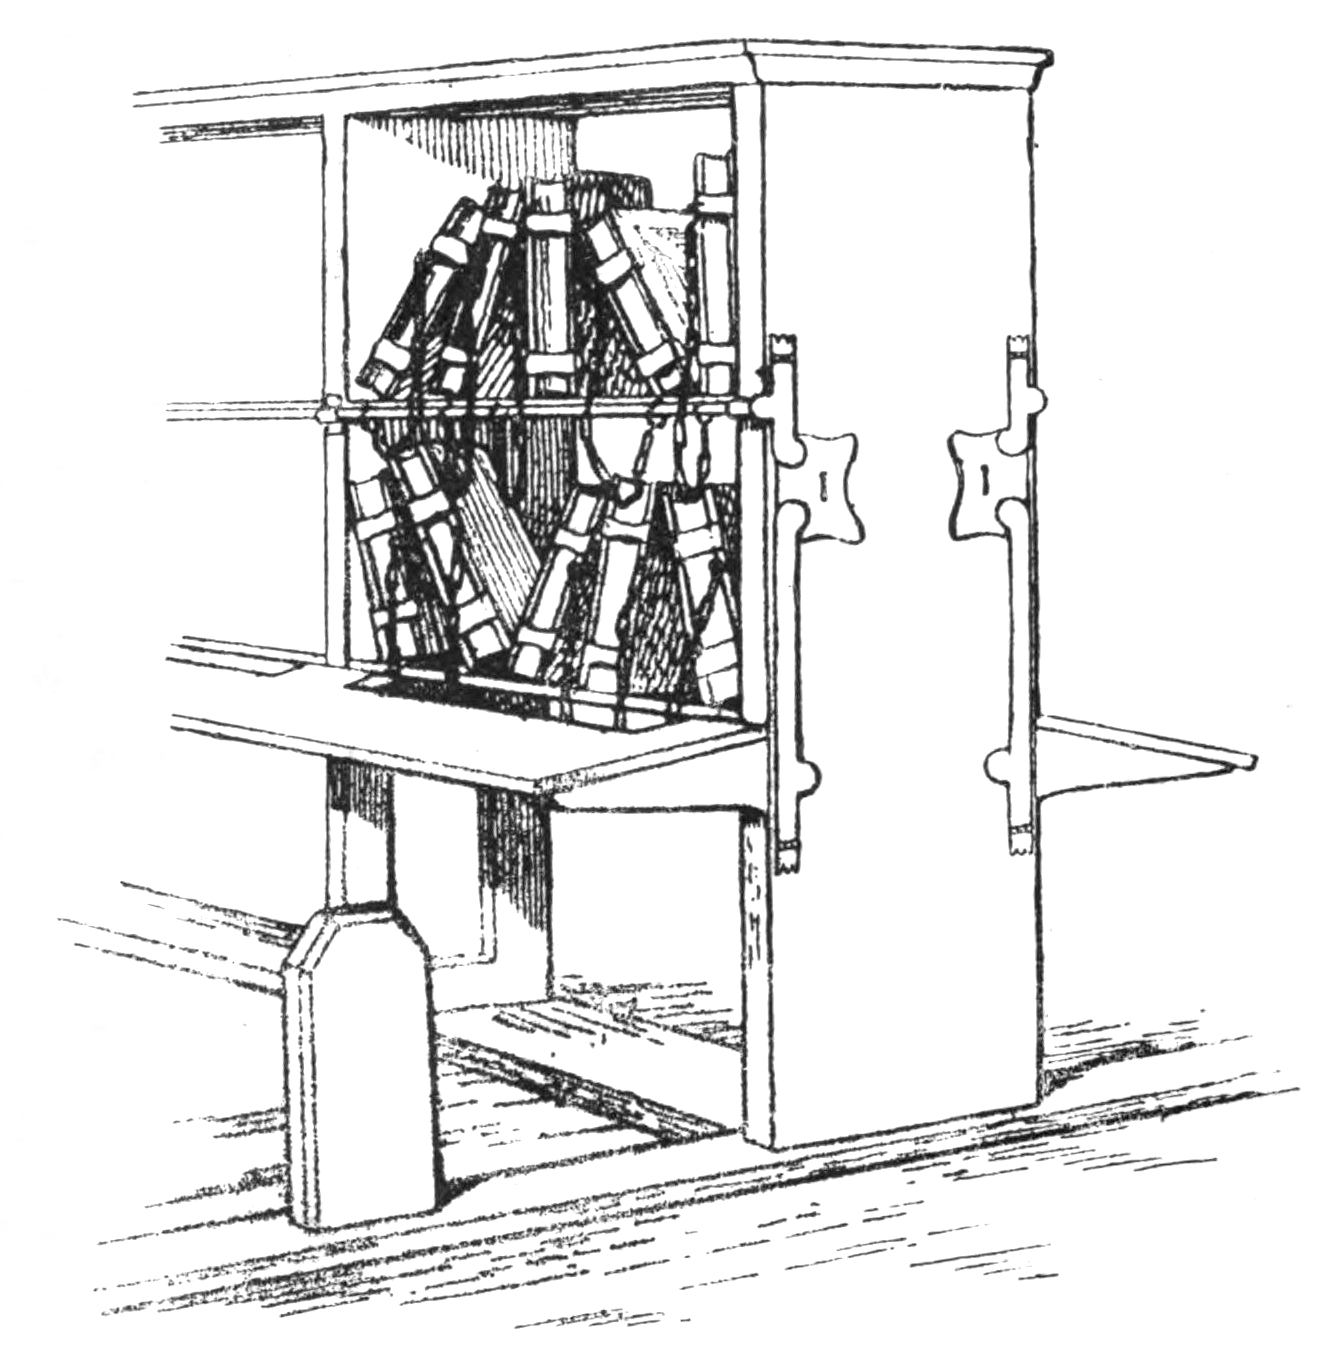 File:Diagrammatic sketch of a bookcase with reader's desk